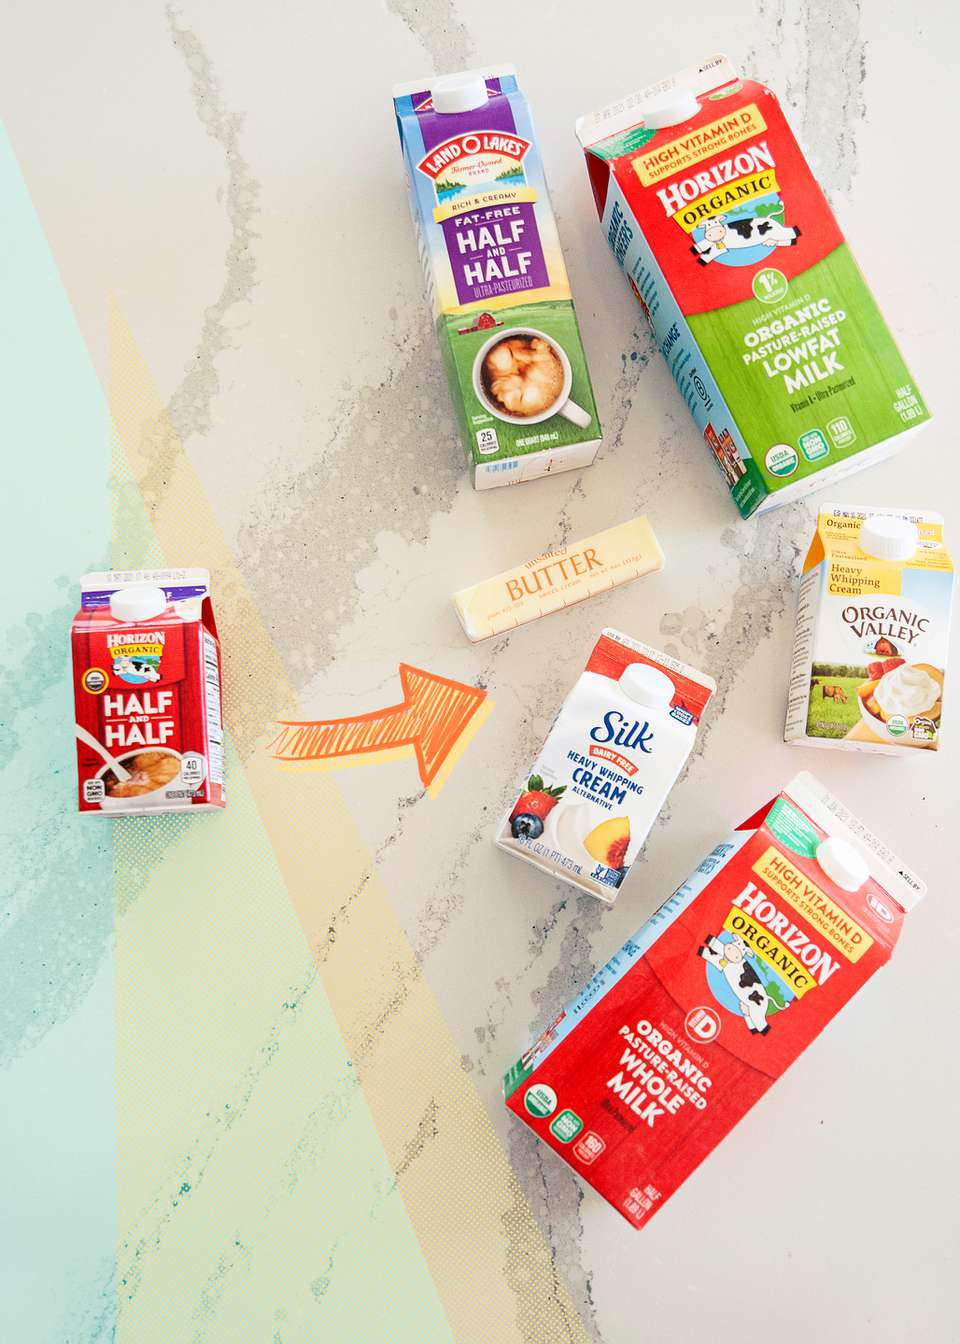 Variety of cartons showing half and half substitutes.